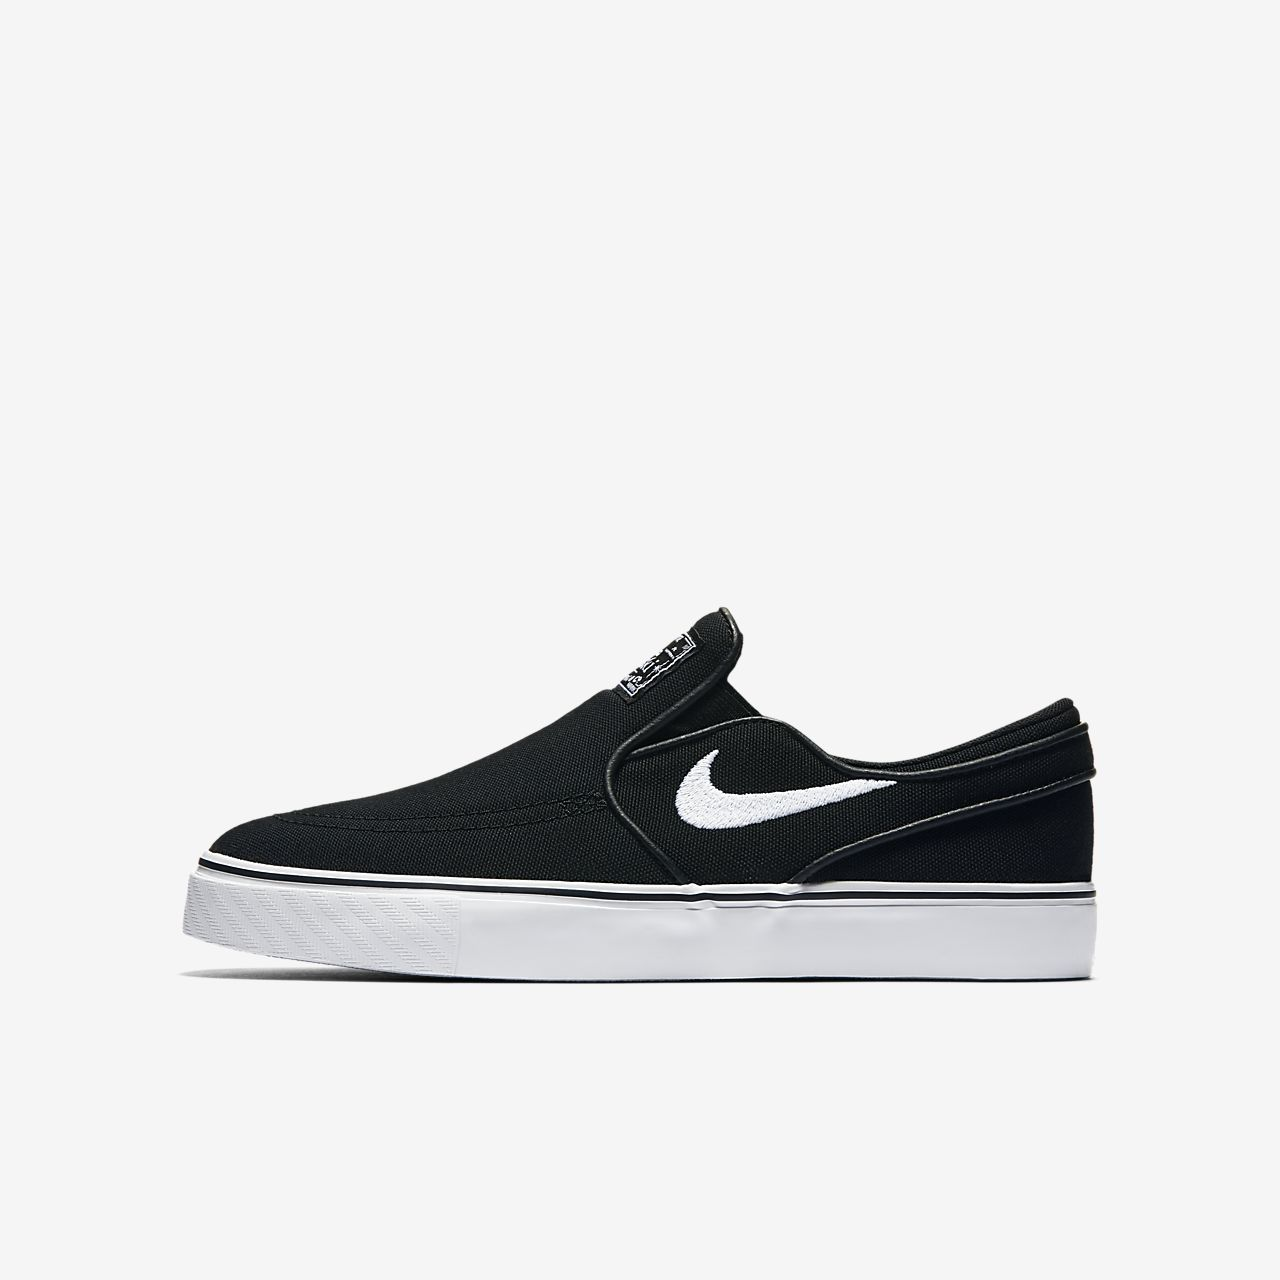 Nike SB Stefan Janoski Canvas Slip-on 大童滑板鞋